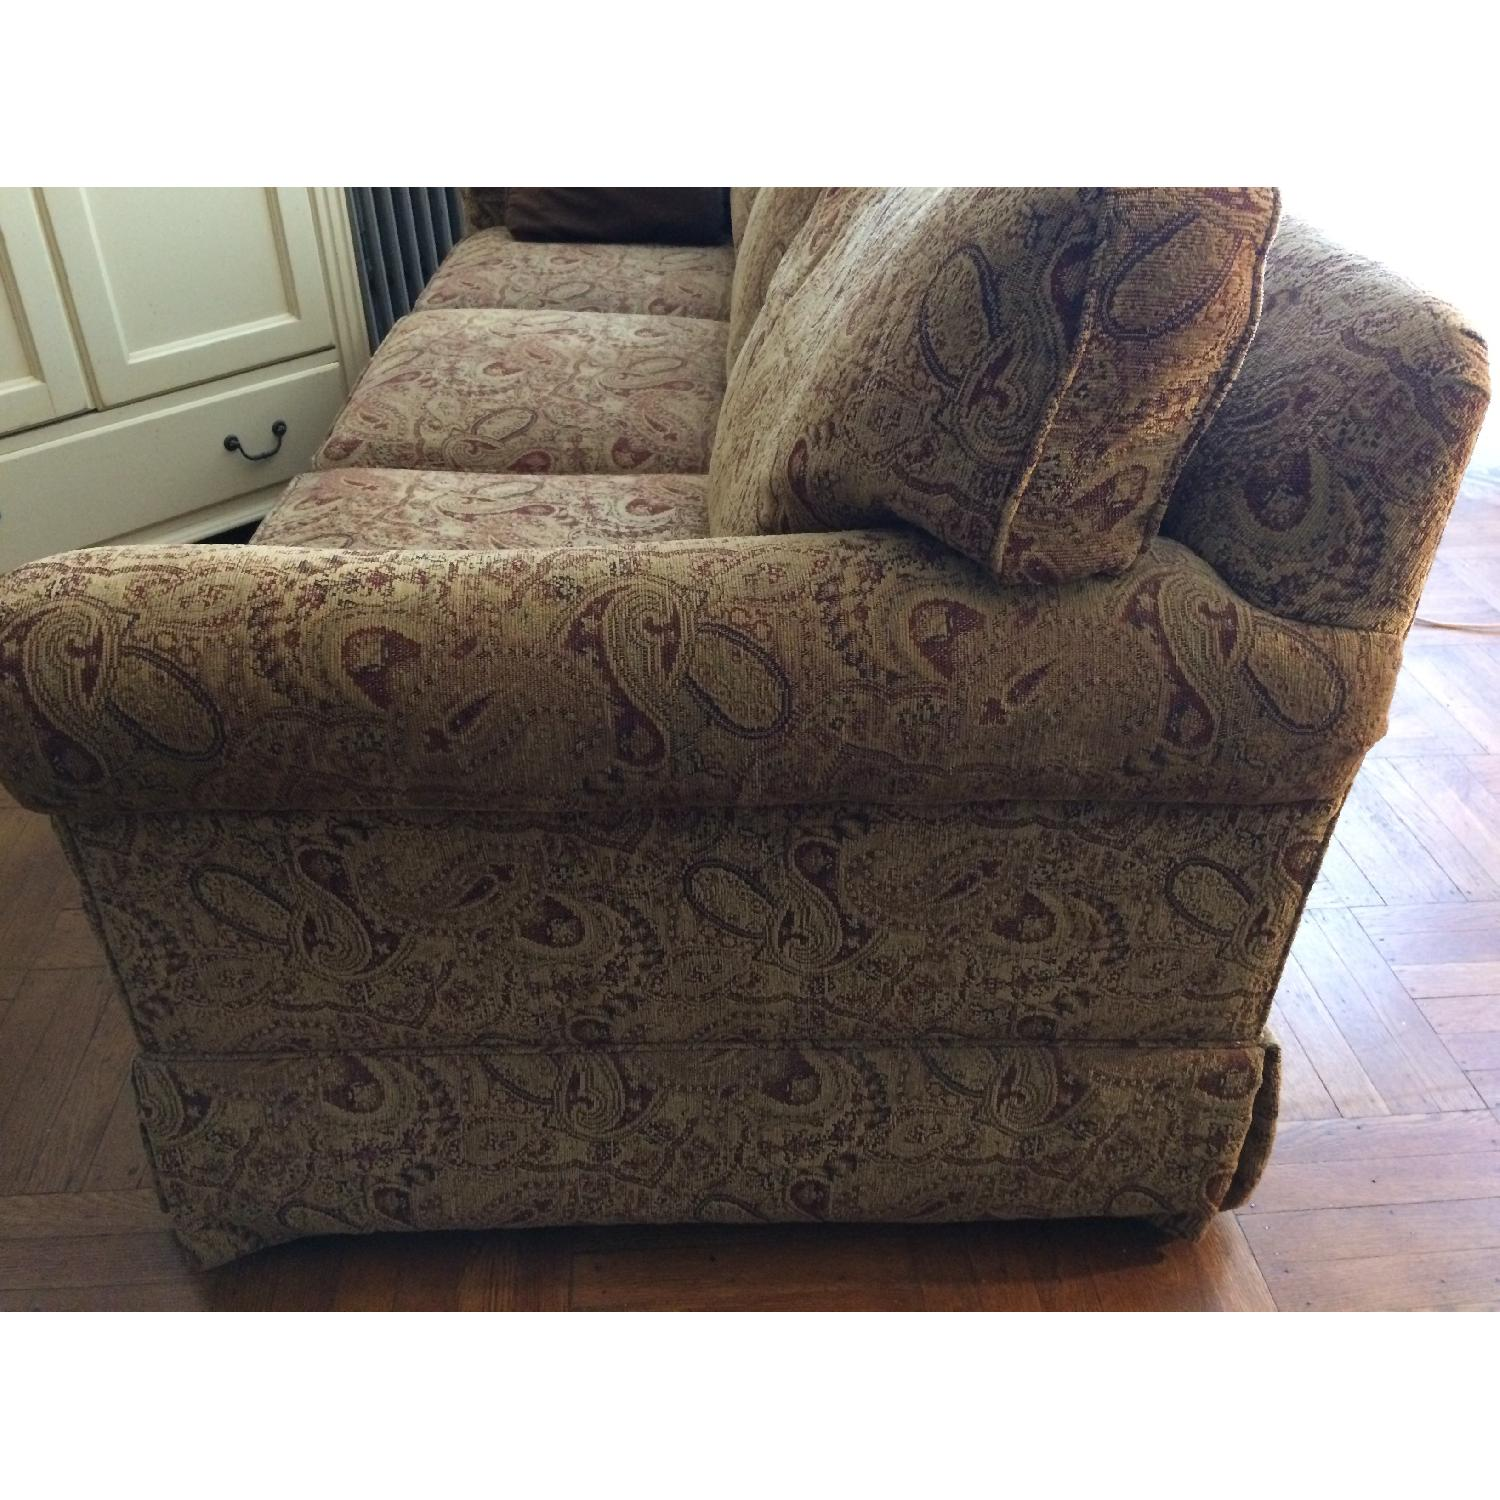 Ethan Allen Slipcovered Rolled Arm Sofa-1